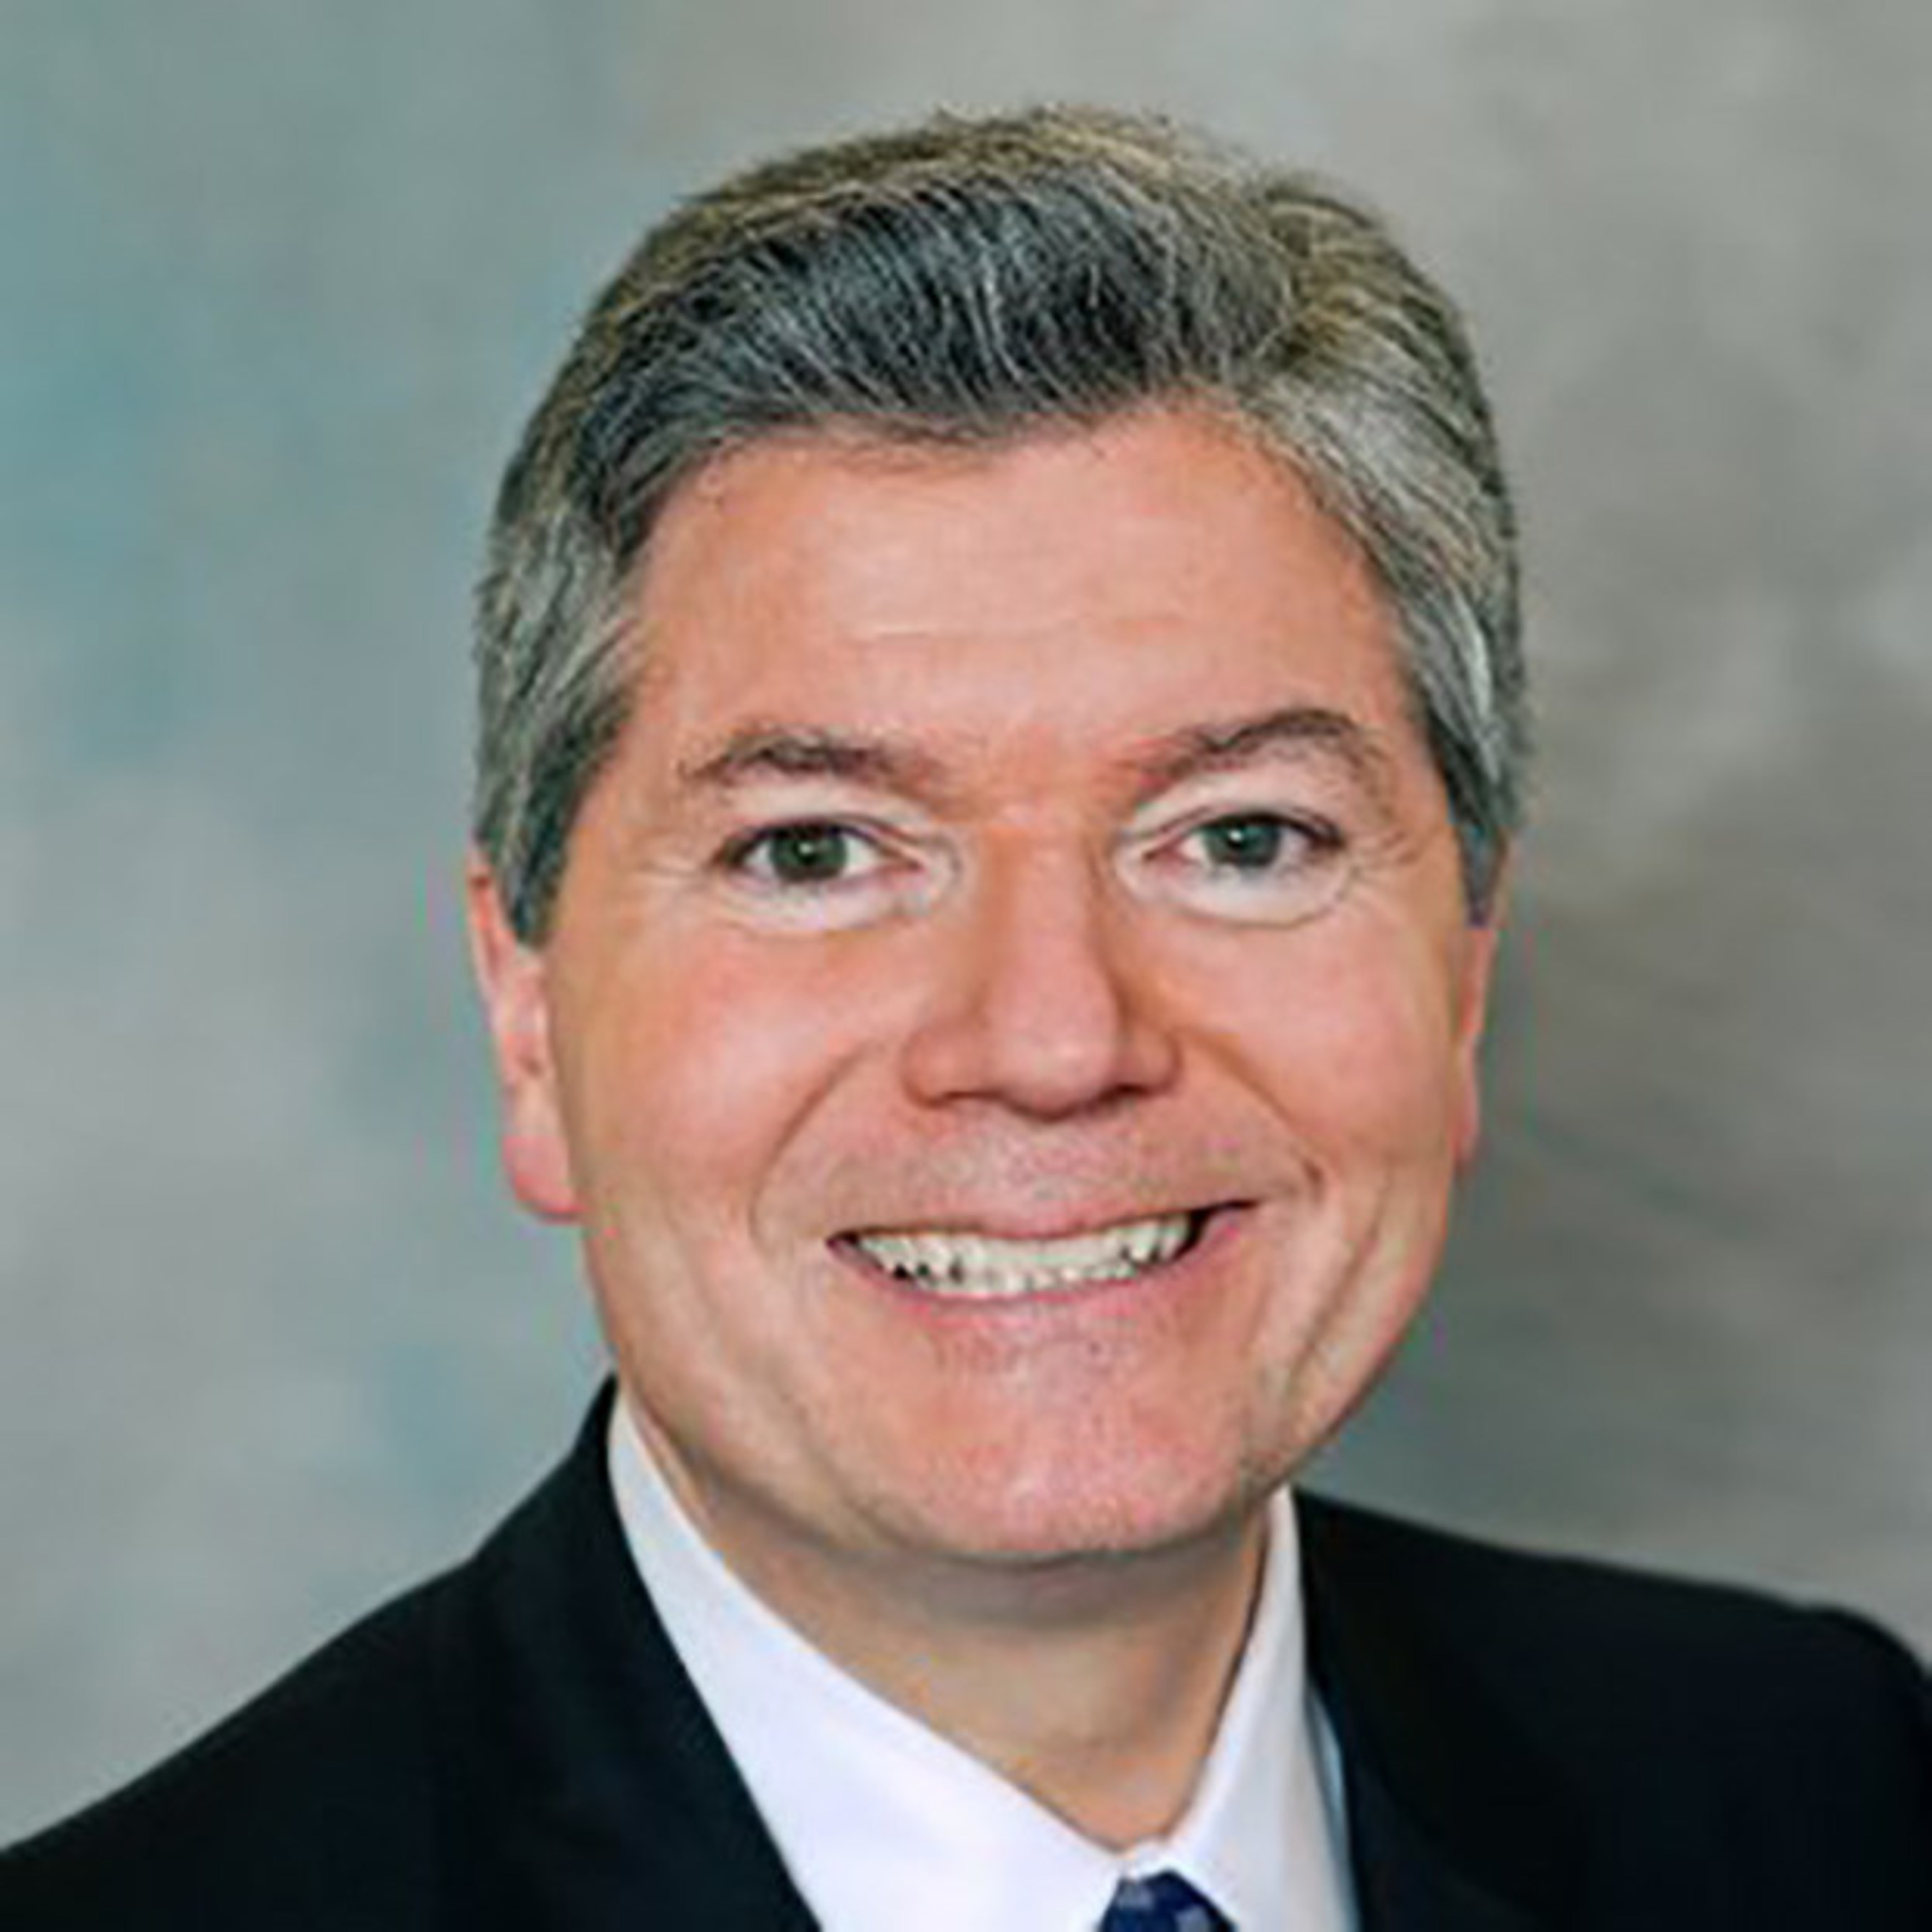 Stephen P. Zieniewicz, FACHE Named President and Chief Executive Officer of Saint Barnabas Medical Center